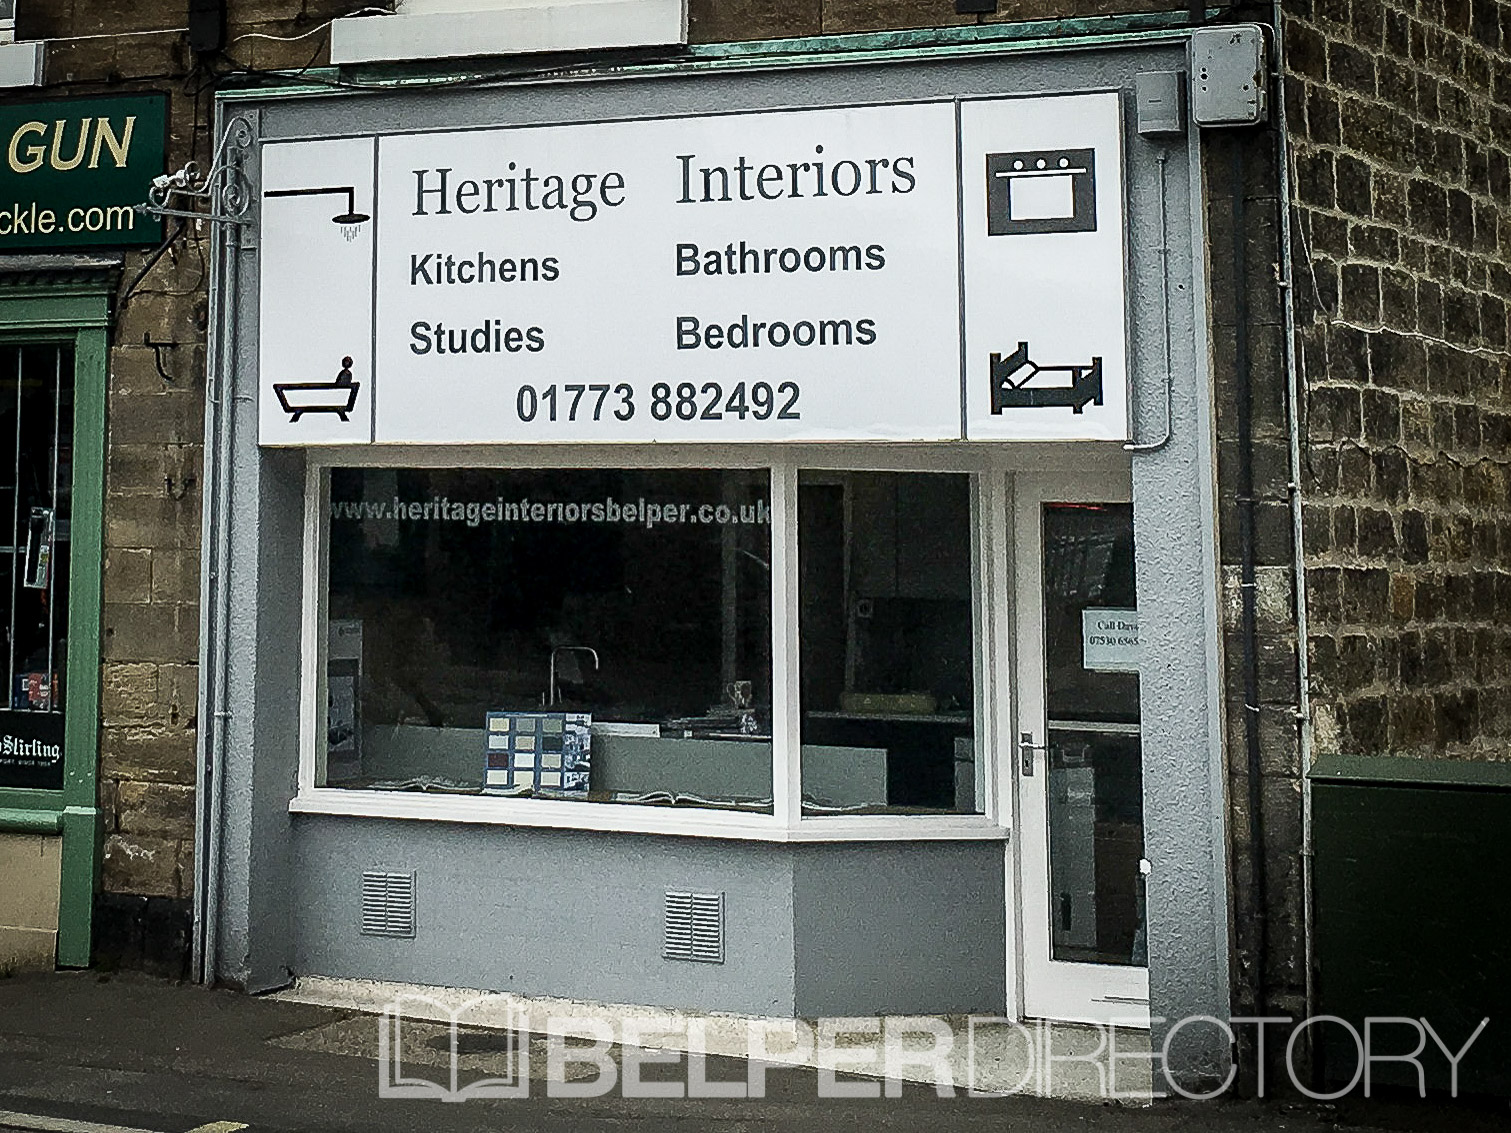 Heritage Interiors Belper on Inter Search